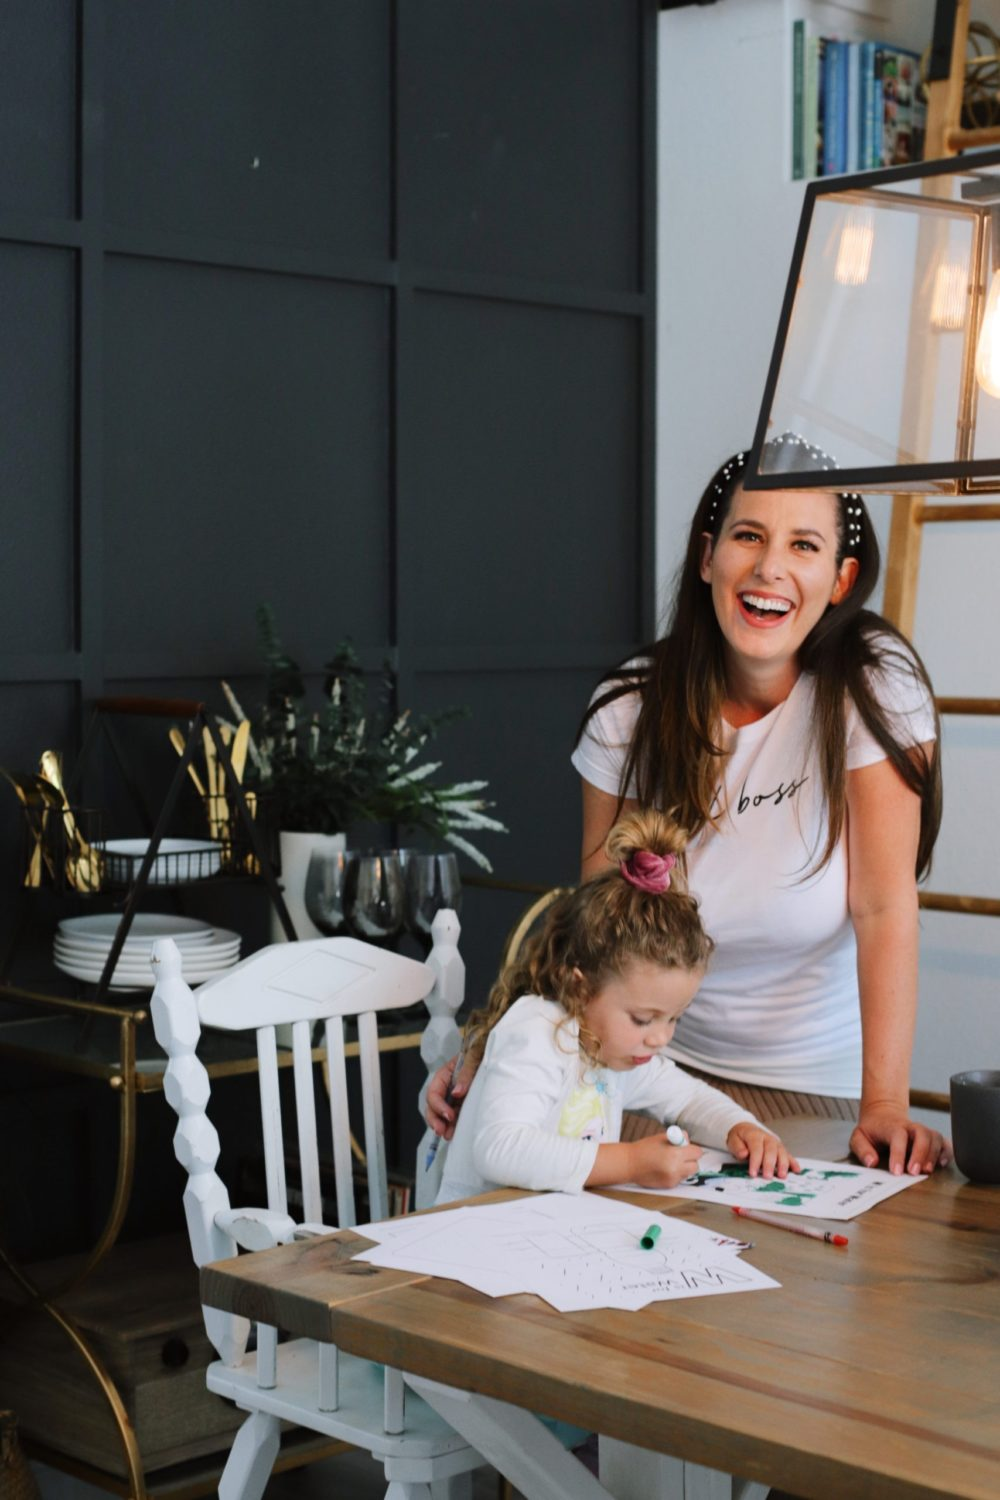 How to Survive Working With Kids at Home | Working From Home With Kids by popular Florida lifestyle blog, Fresh Mommy Blog: image of a woman standing next to her young daughter while she does school work at the table.